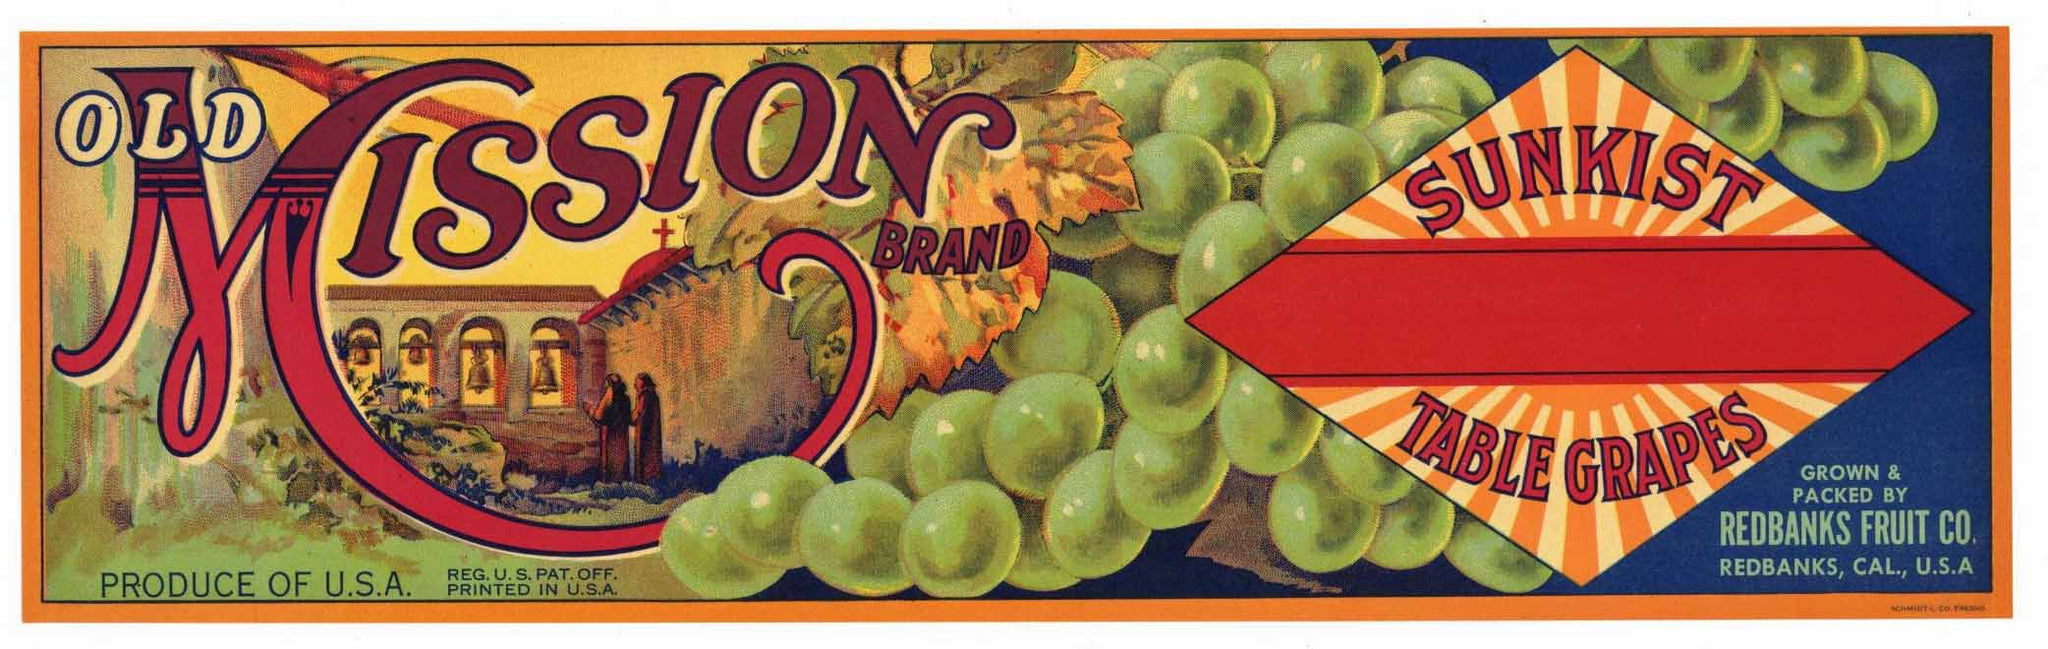 Old Mission Brand Vintage Grape Crate Label, g